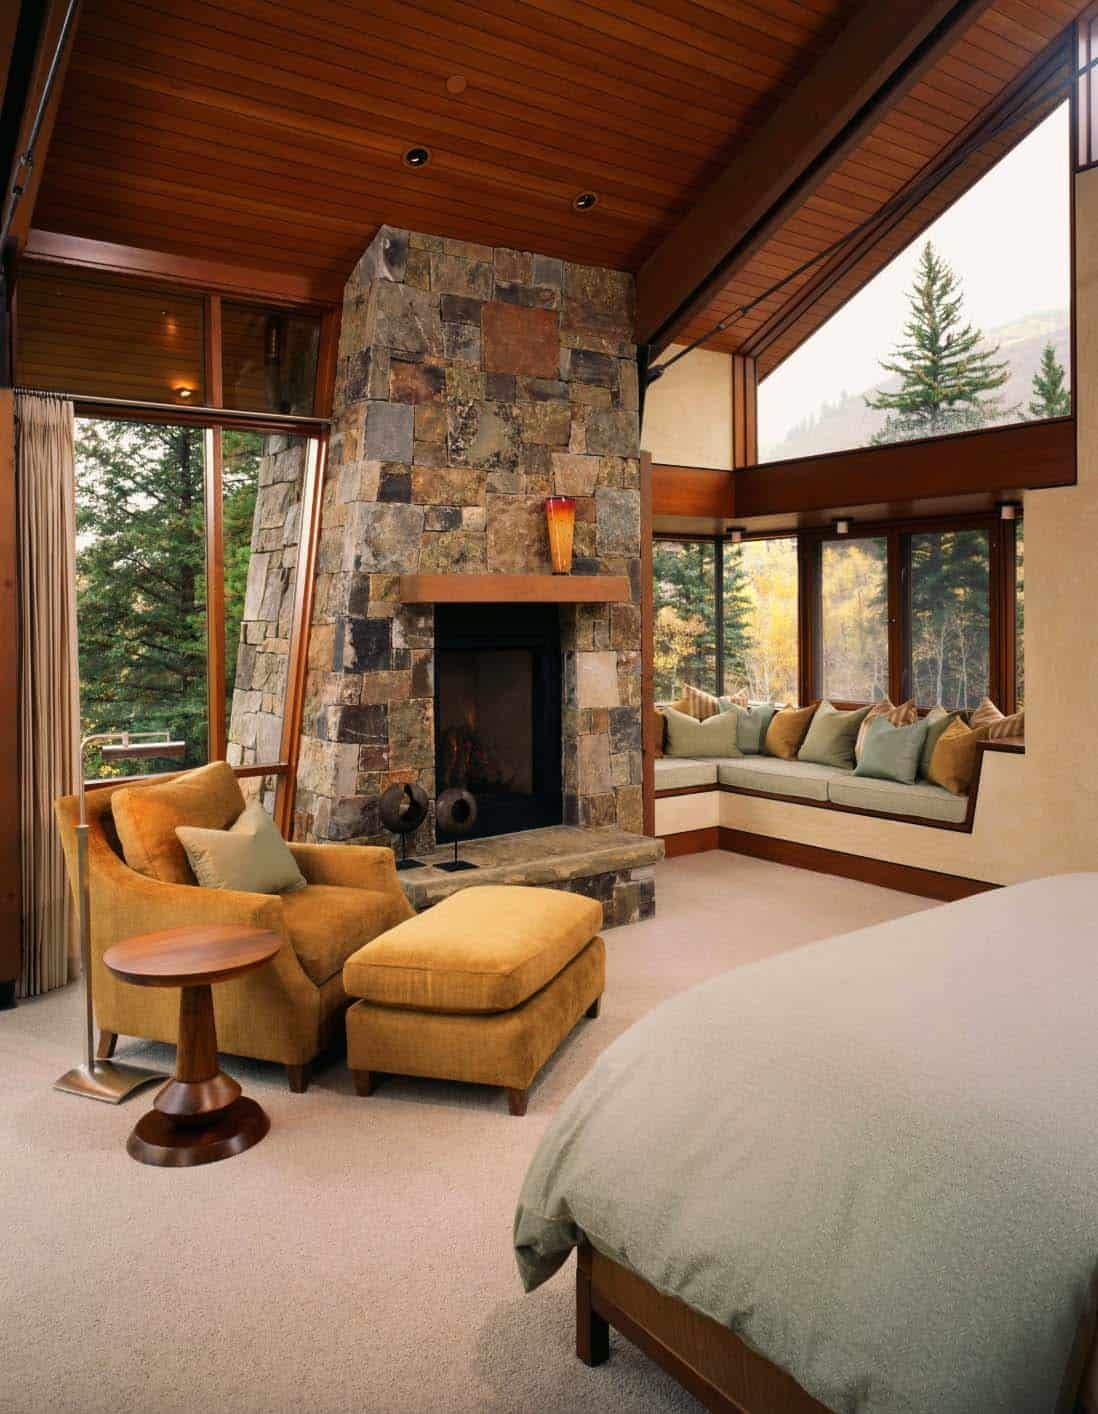 modernrustic mountain dwelling with picturesque setting